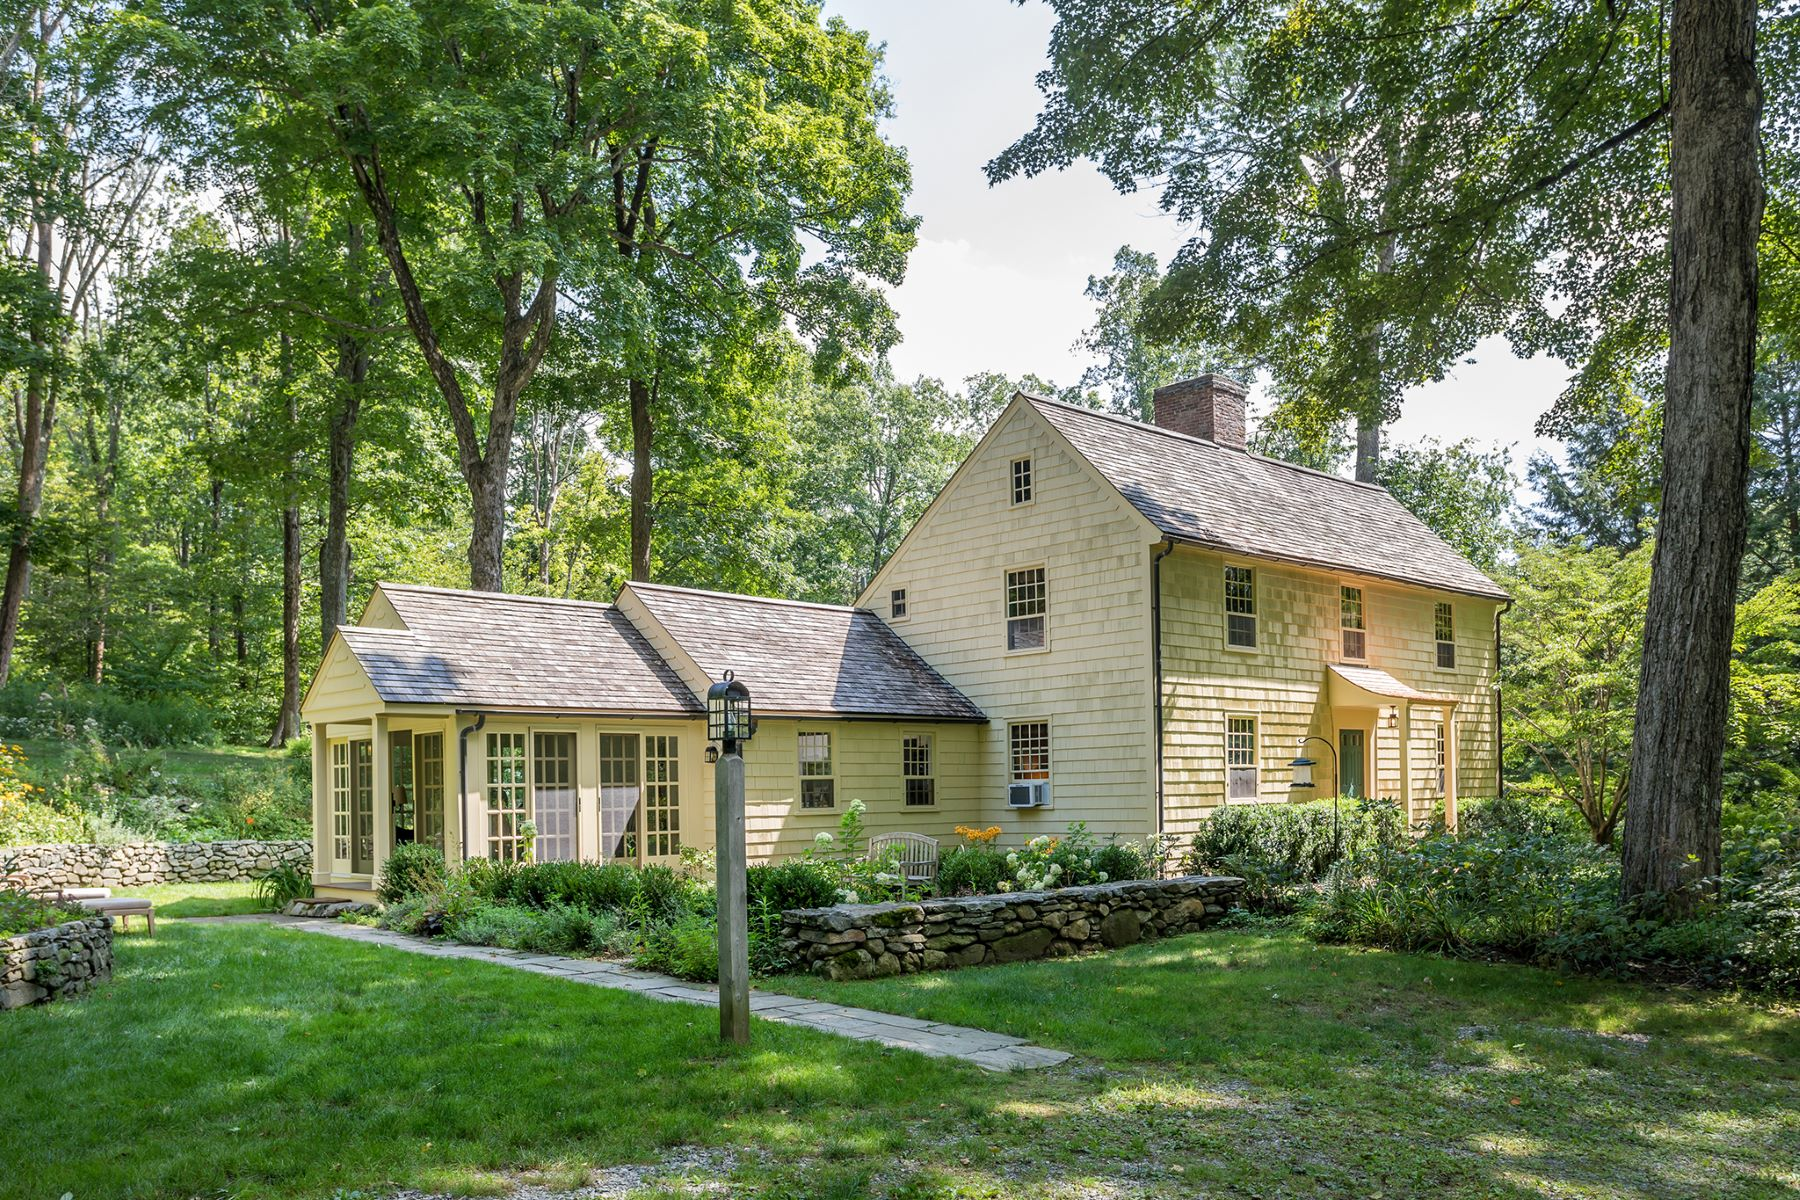 Single Family Homes for Sale at Antique Historic Cape 462 Milton Road Litchfield, Connecticut 06759 United States